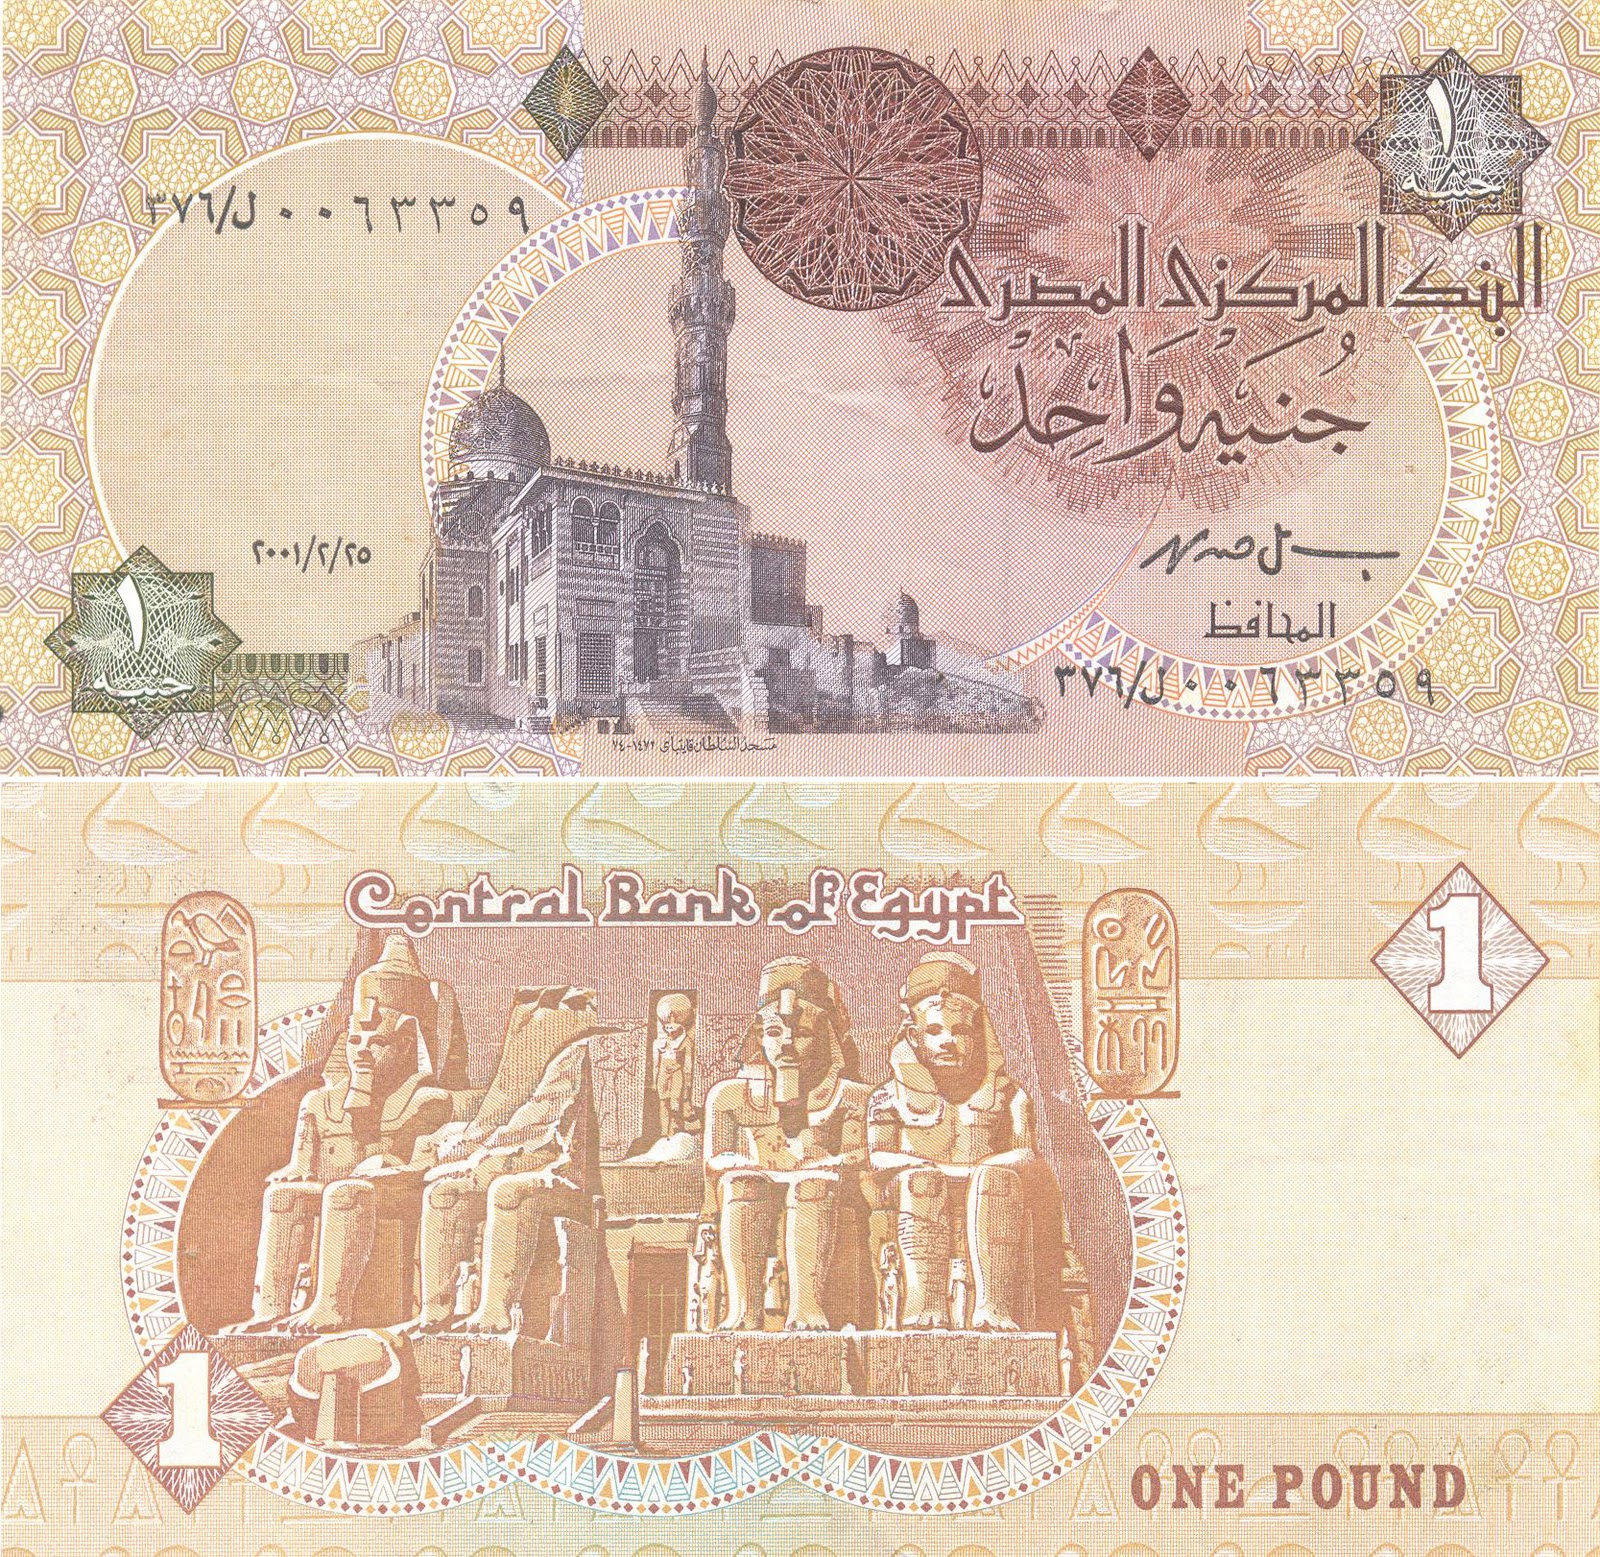 Xcdegp convert east caribbean dollar to egyptian pound rterfo egyptian poundjamilas coins and notes collection biocorpaavc